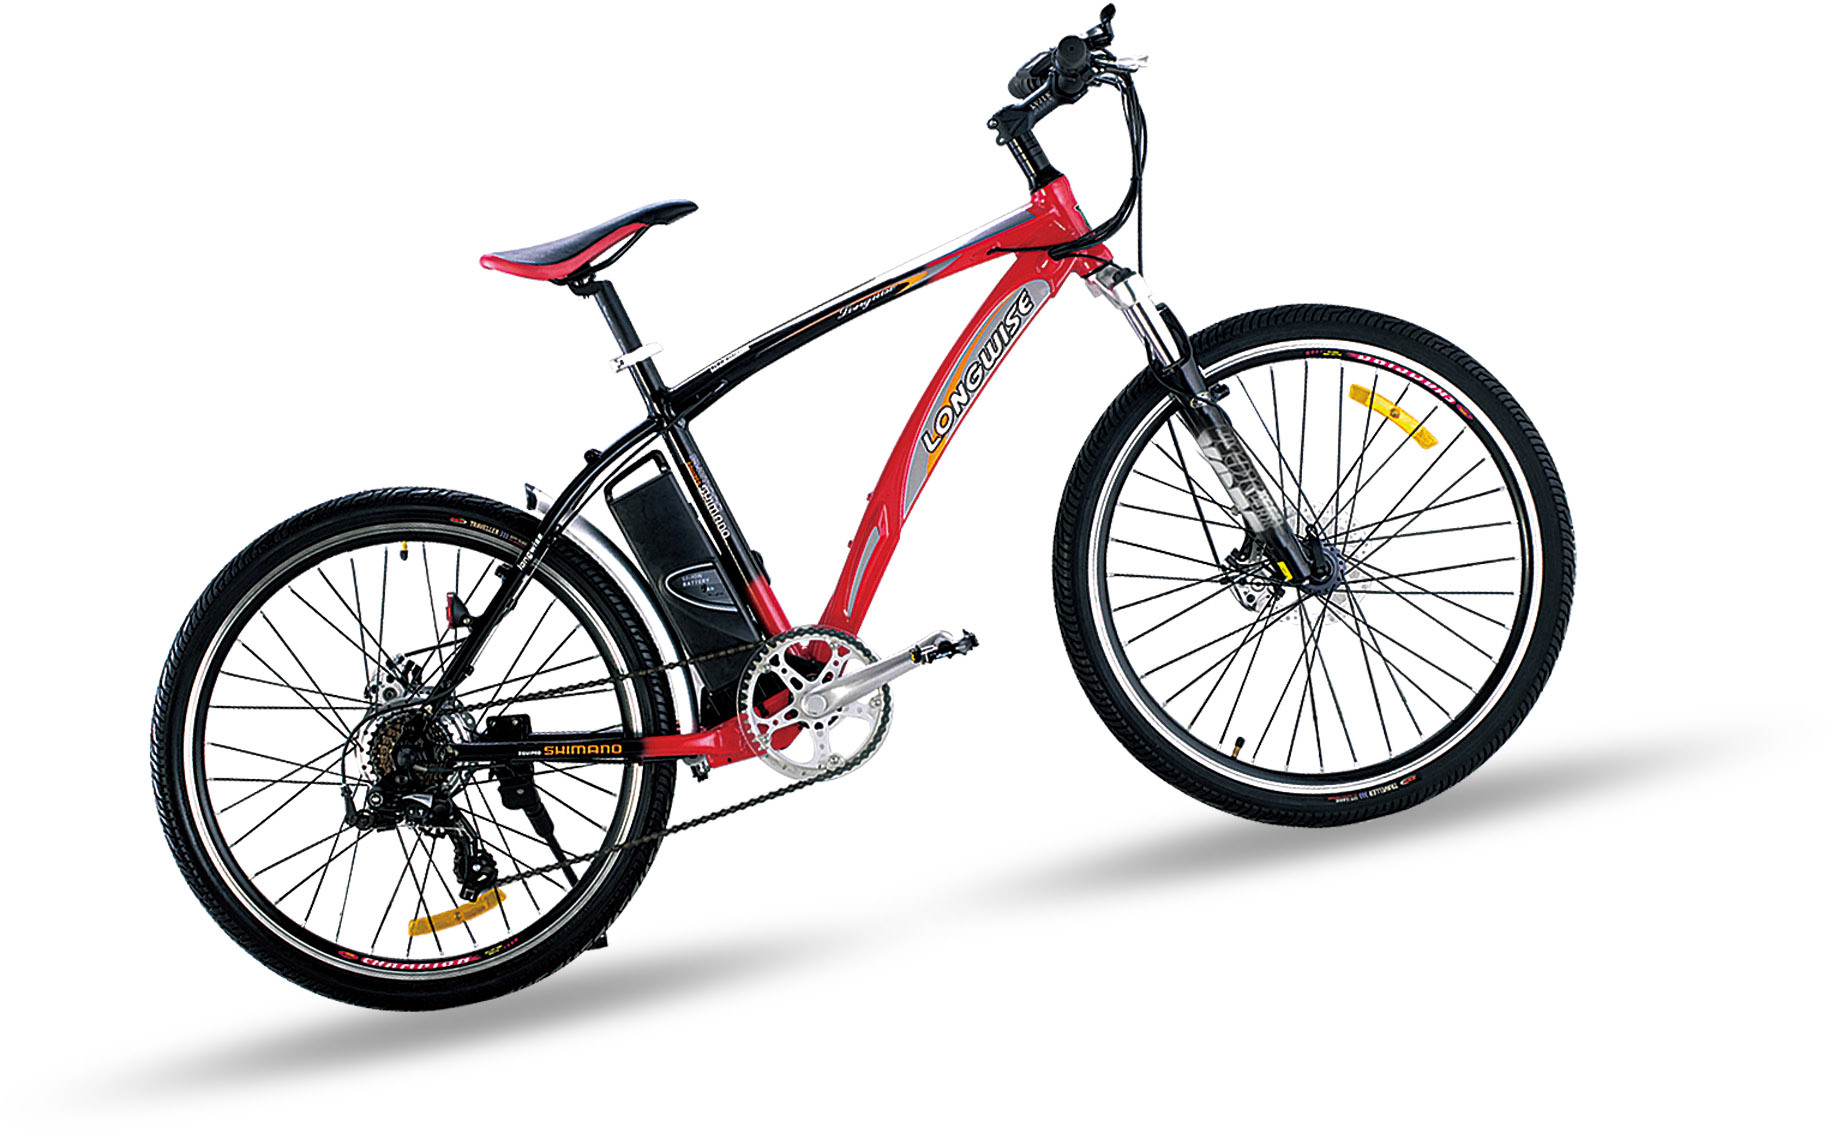 Mid Position Motor Electric Mountain Bike Bicycle Ys Meb